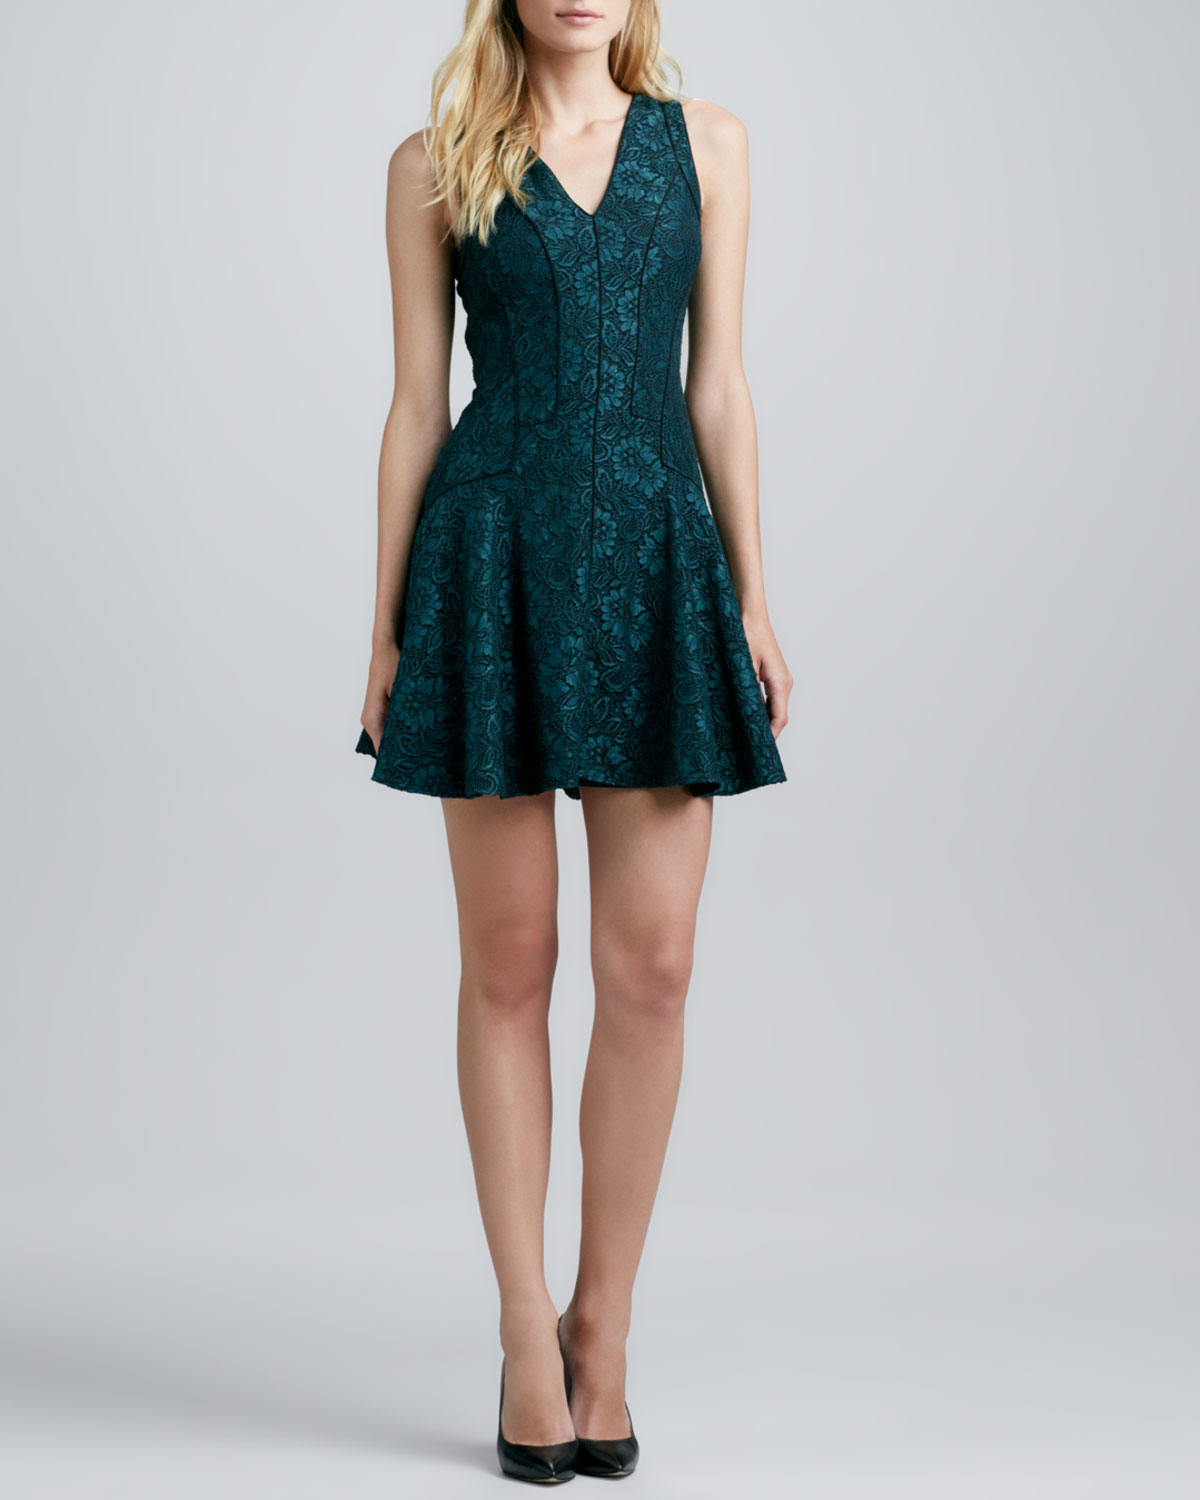 Ali Ro Sleeveless Lace Fit And Flare Dress In Green Lyst